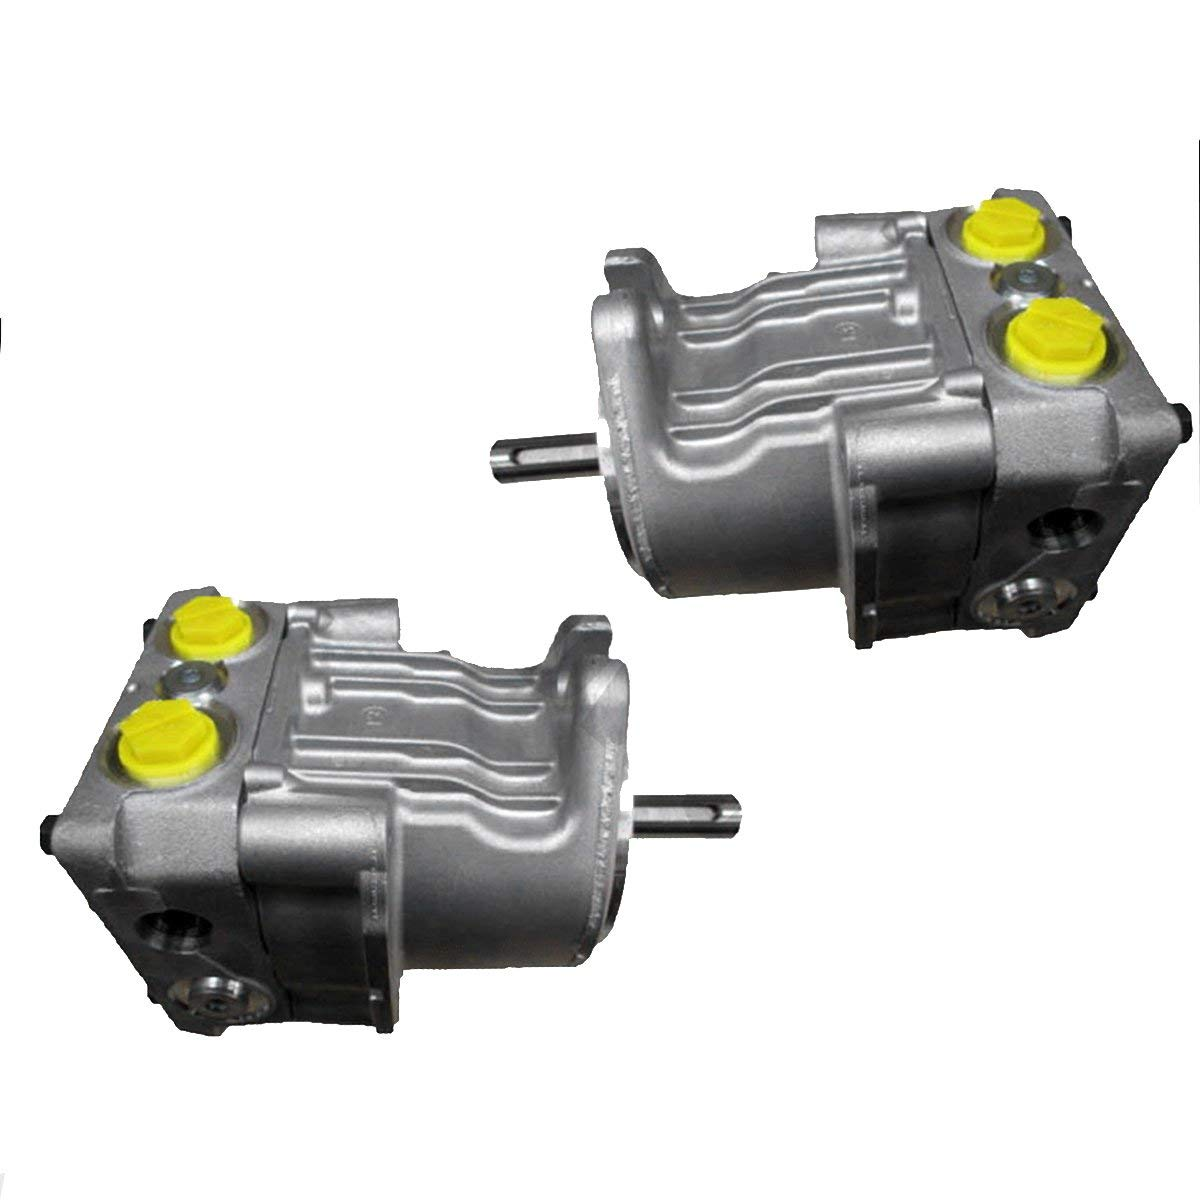 Hydro Gear Repl Pump 10cc (Right & Left) Kit for Hustler 926253 Lawn Mower & Other / PG-1KCC-DY1X-XXXX PG-1HCC-DY1X-XXXX